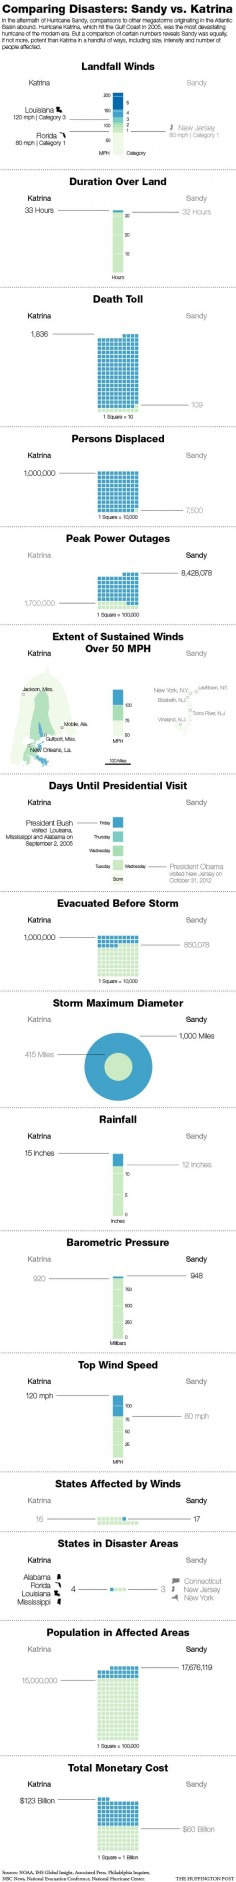 Infographic comparing Hurricanes Sandy vs. Katrina